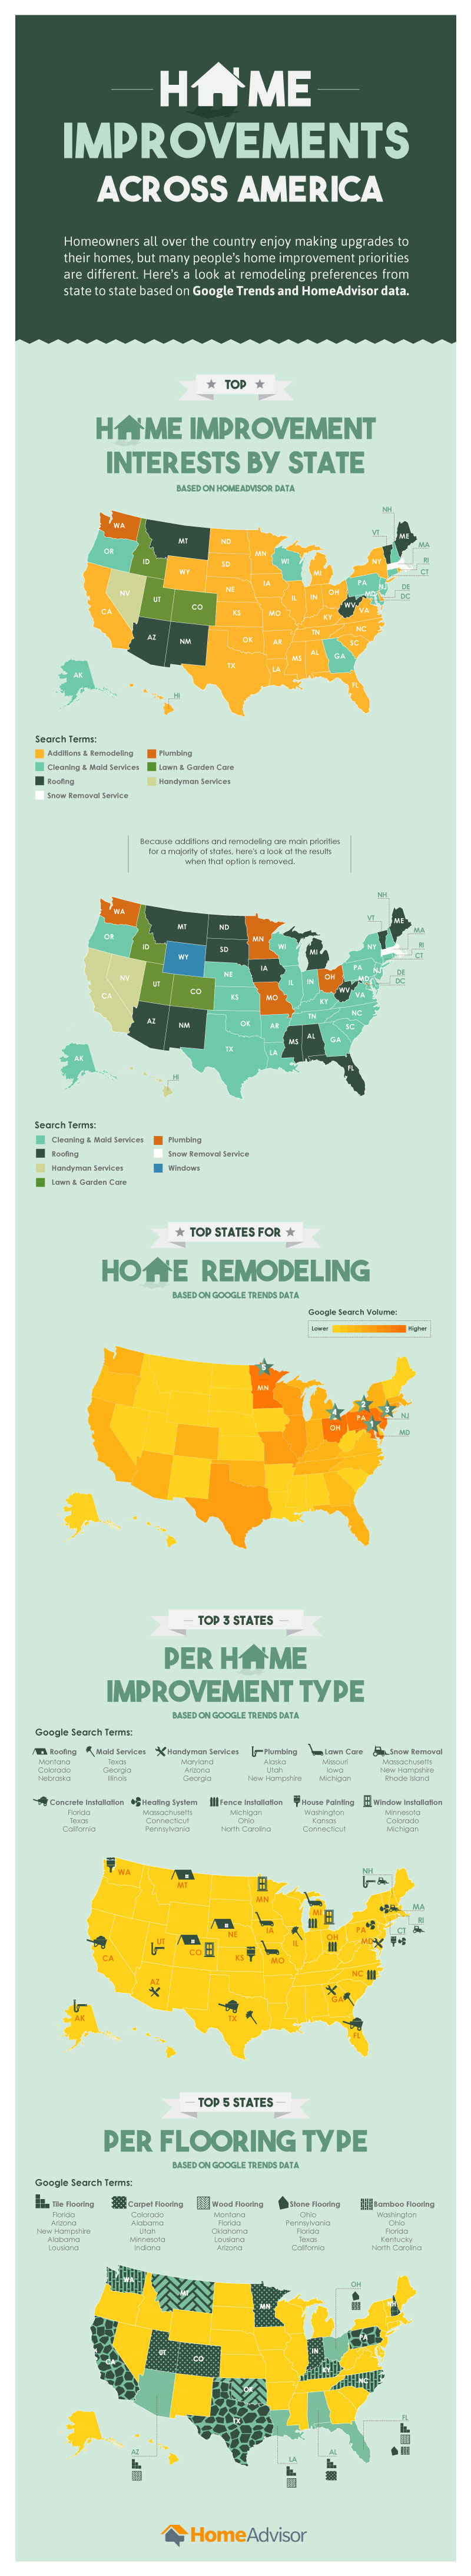 Home Improvements Across America